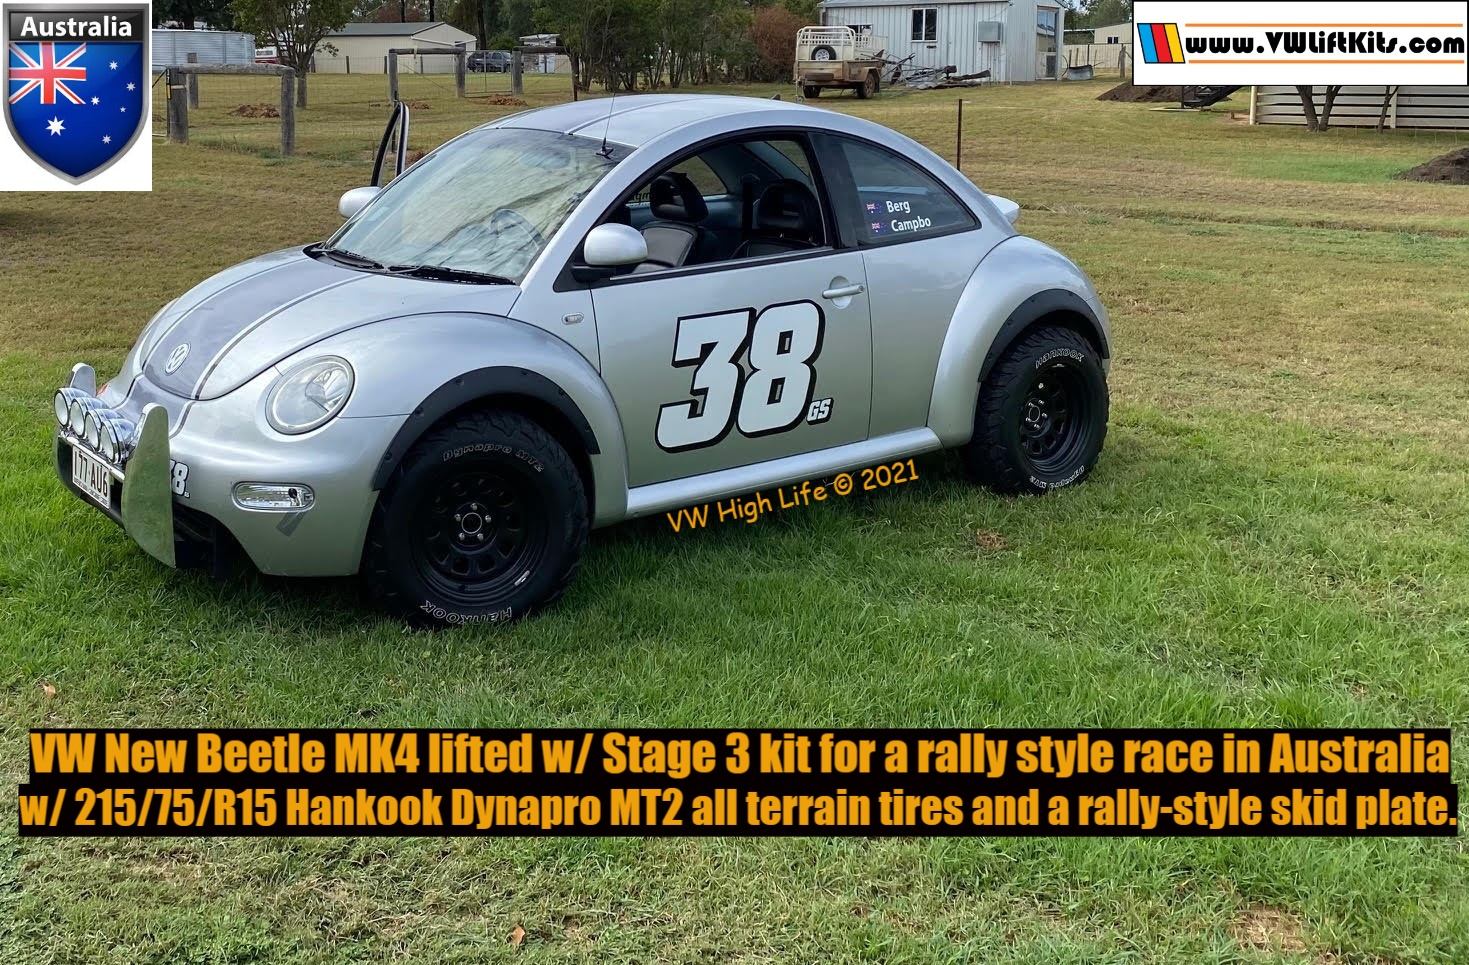 First VW Beetle lifted in Australia with 28-inch off road tires and a rally skid plate.